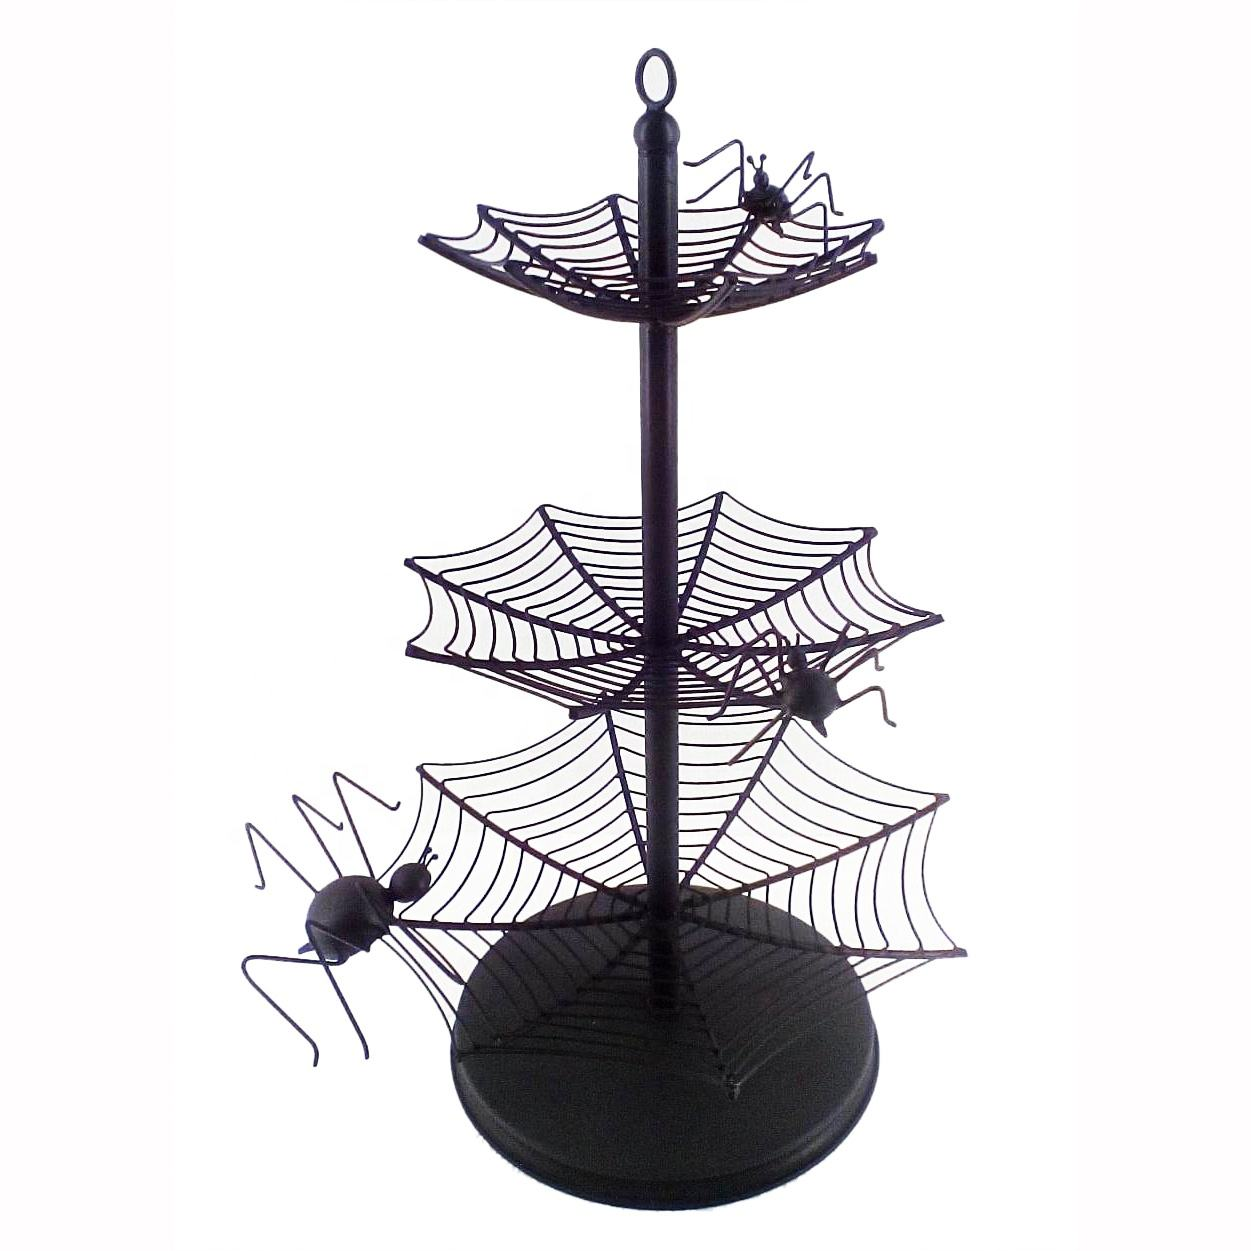 Attractive Matt Black Color Iron Metal 3 Tier Wedding And Cake Shop Decorative Cake Stand